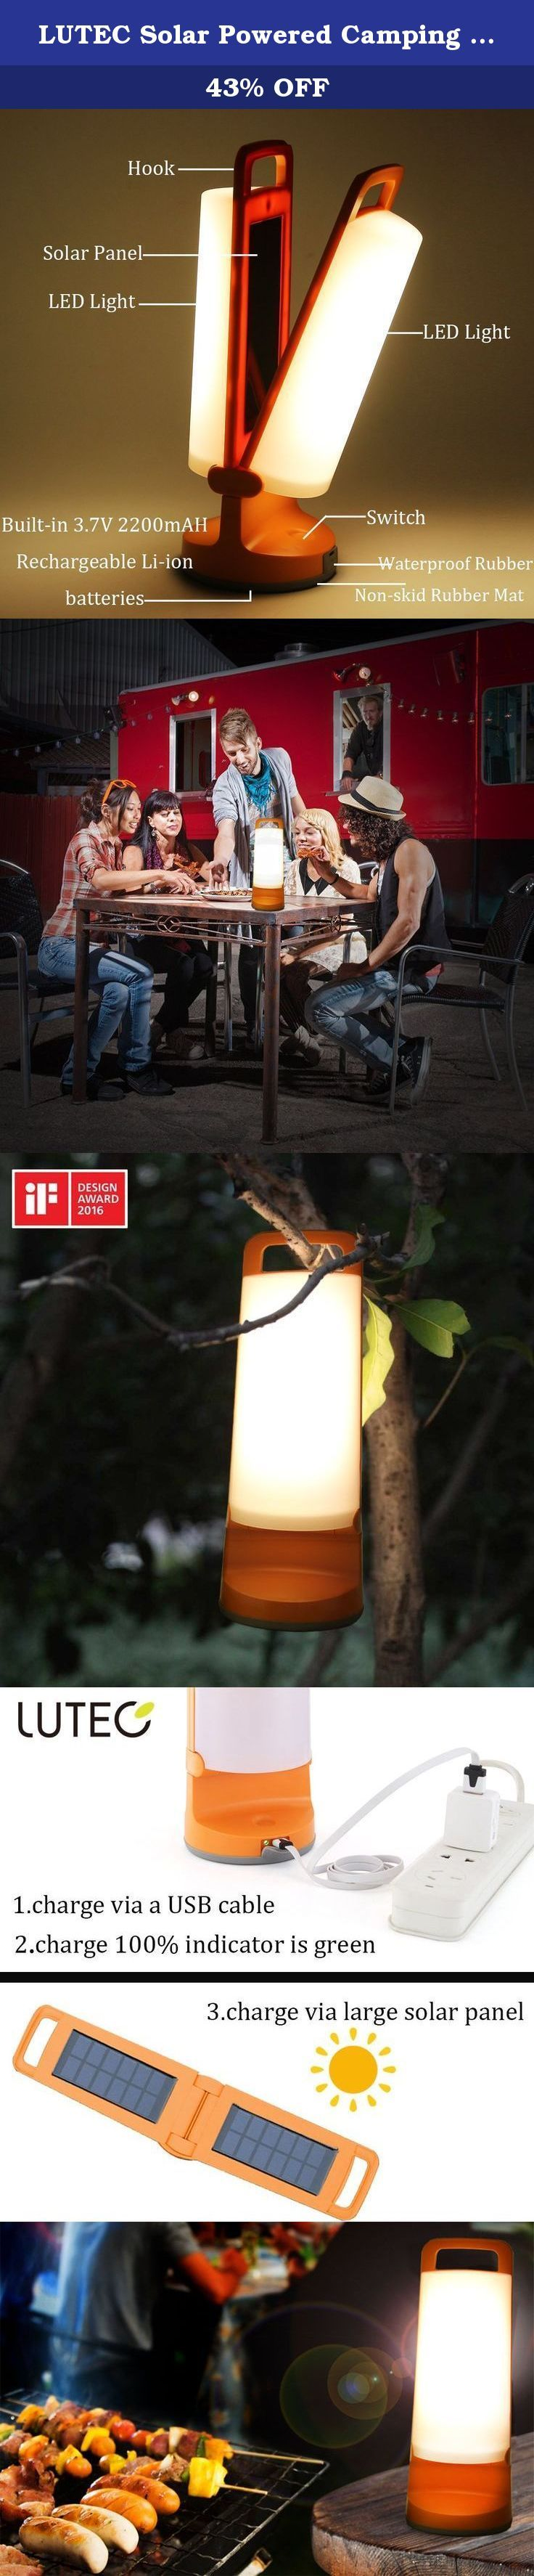 LUTEC Solar Powered Camping LED light 120 Lumens 4000k Max 3 Modes solar lighting Led Night Light Portable Trekking Travel Lantern Waterproof Garden Hand-held Outdoor Emergency indoor Sleeping lamp. About LUTEC LUTEC is one of the leading horizontal integrated manufacturer of premium outdoor lighting. It has professional and international team of designers and engineers that work together everyday, using the most updated software, coming up with innovative solutions and products....